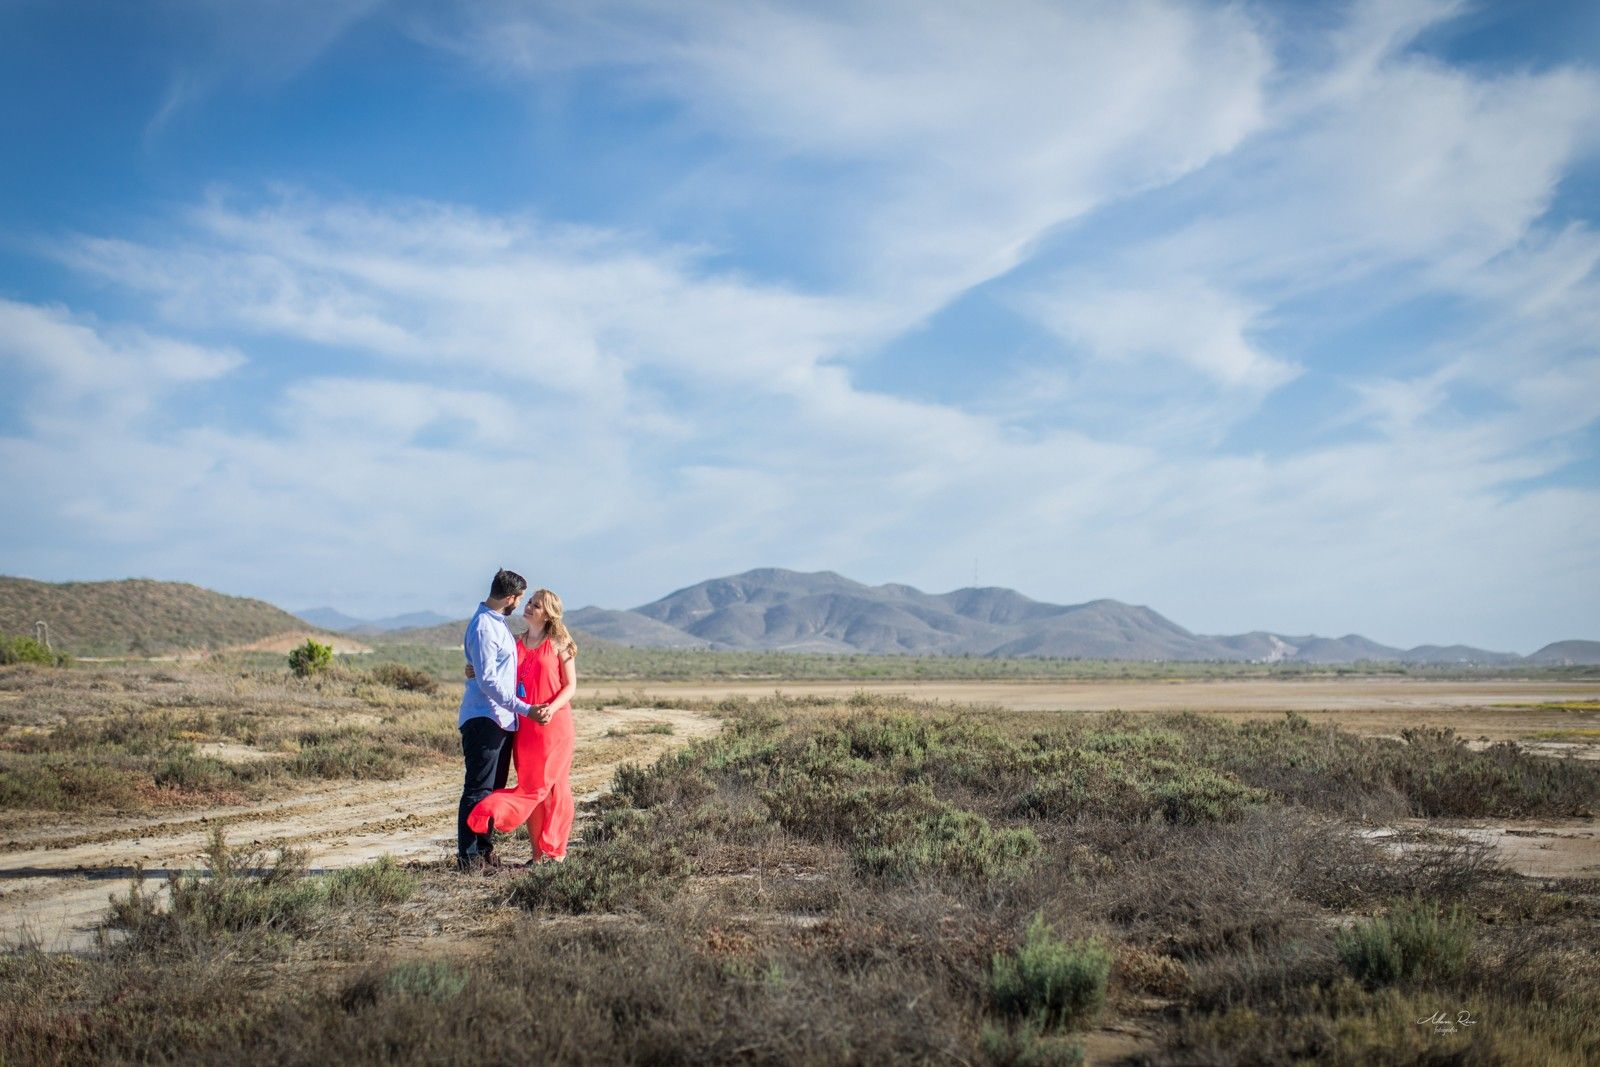 Allan Rice Fotografía #prewedding #photoshoot #openairphotoshoot #canonmarkiv #mexico #naturallight